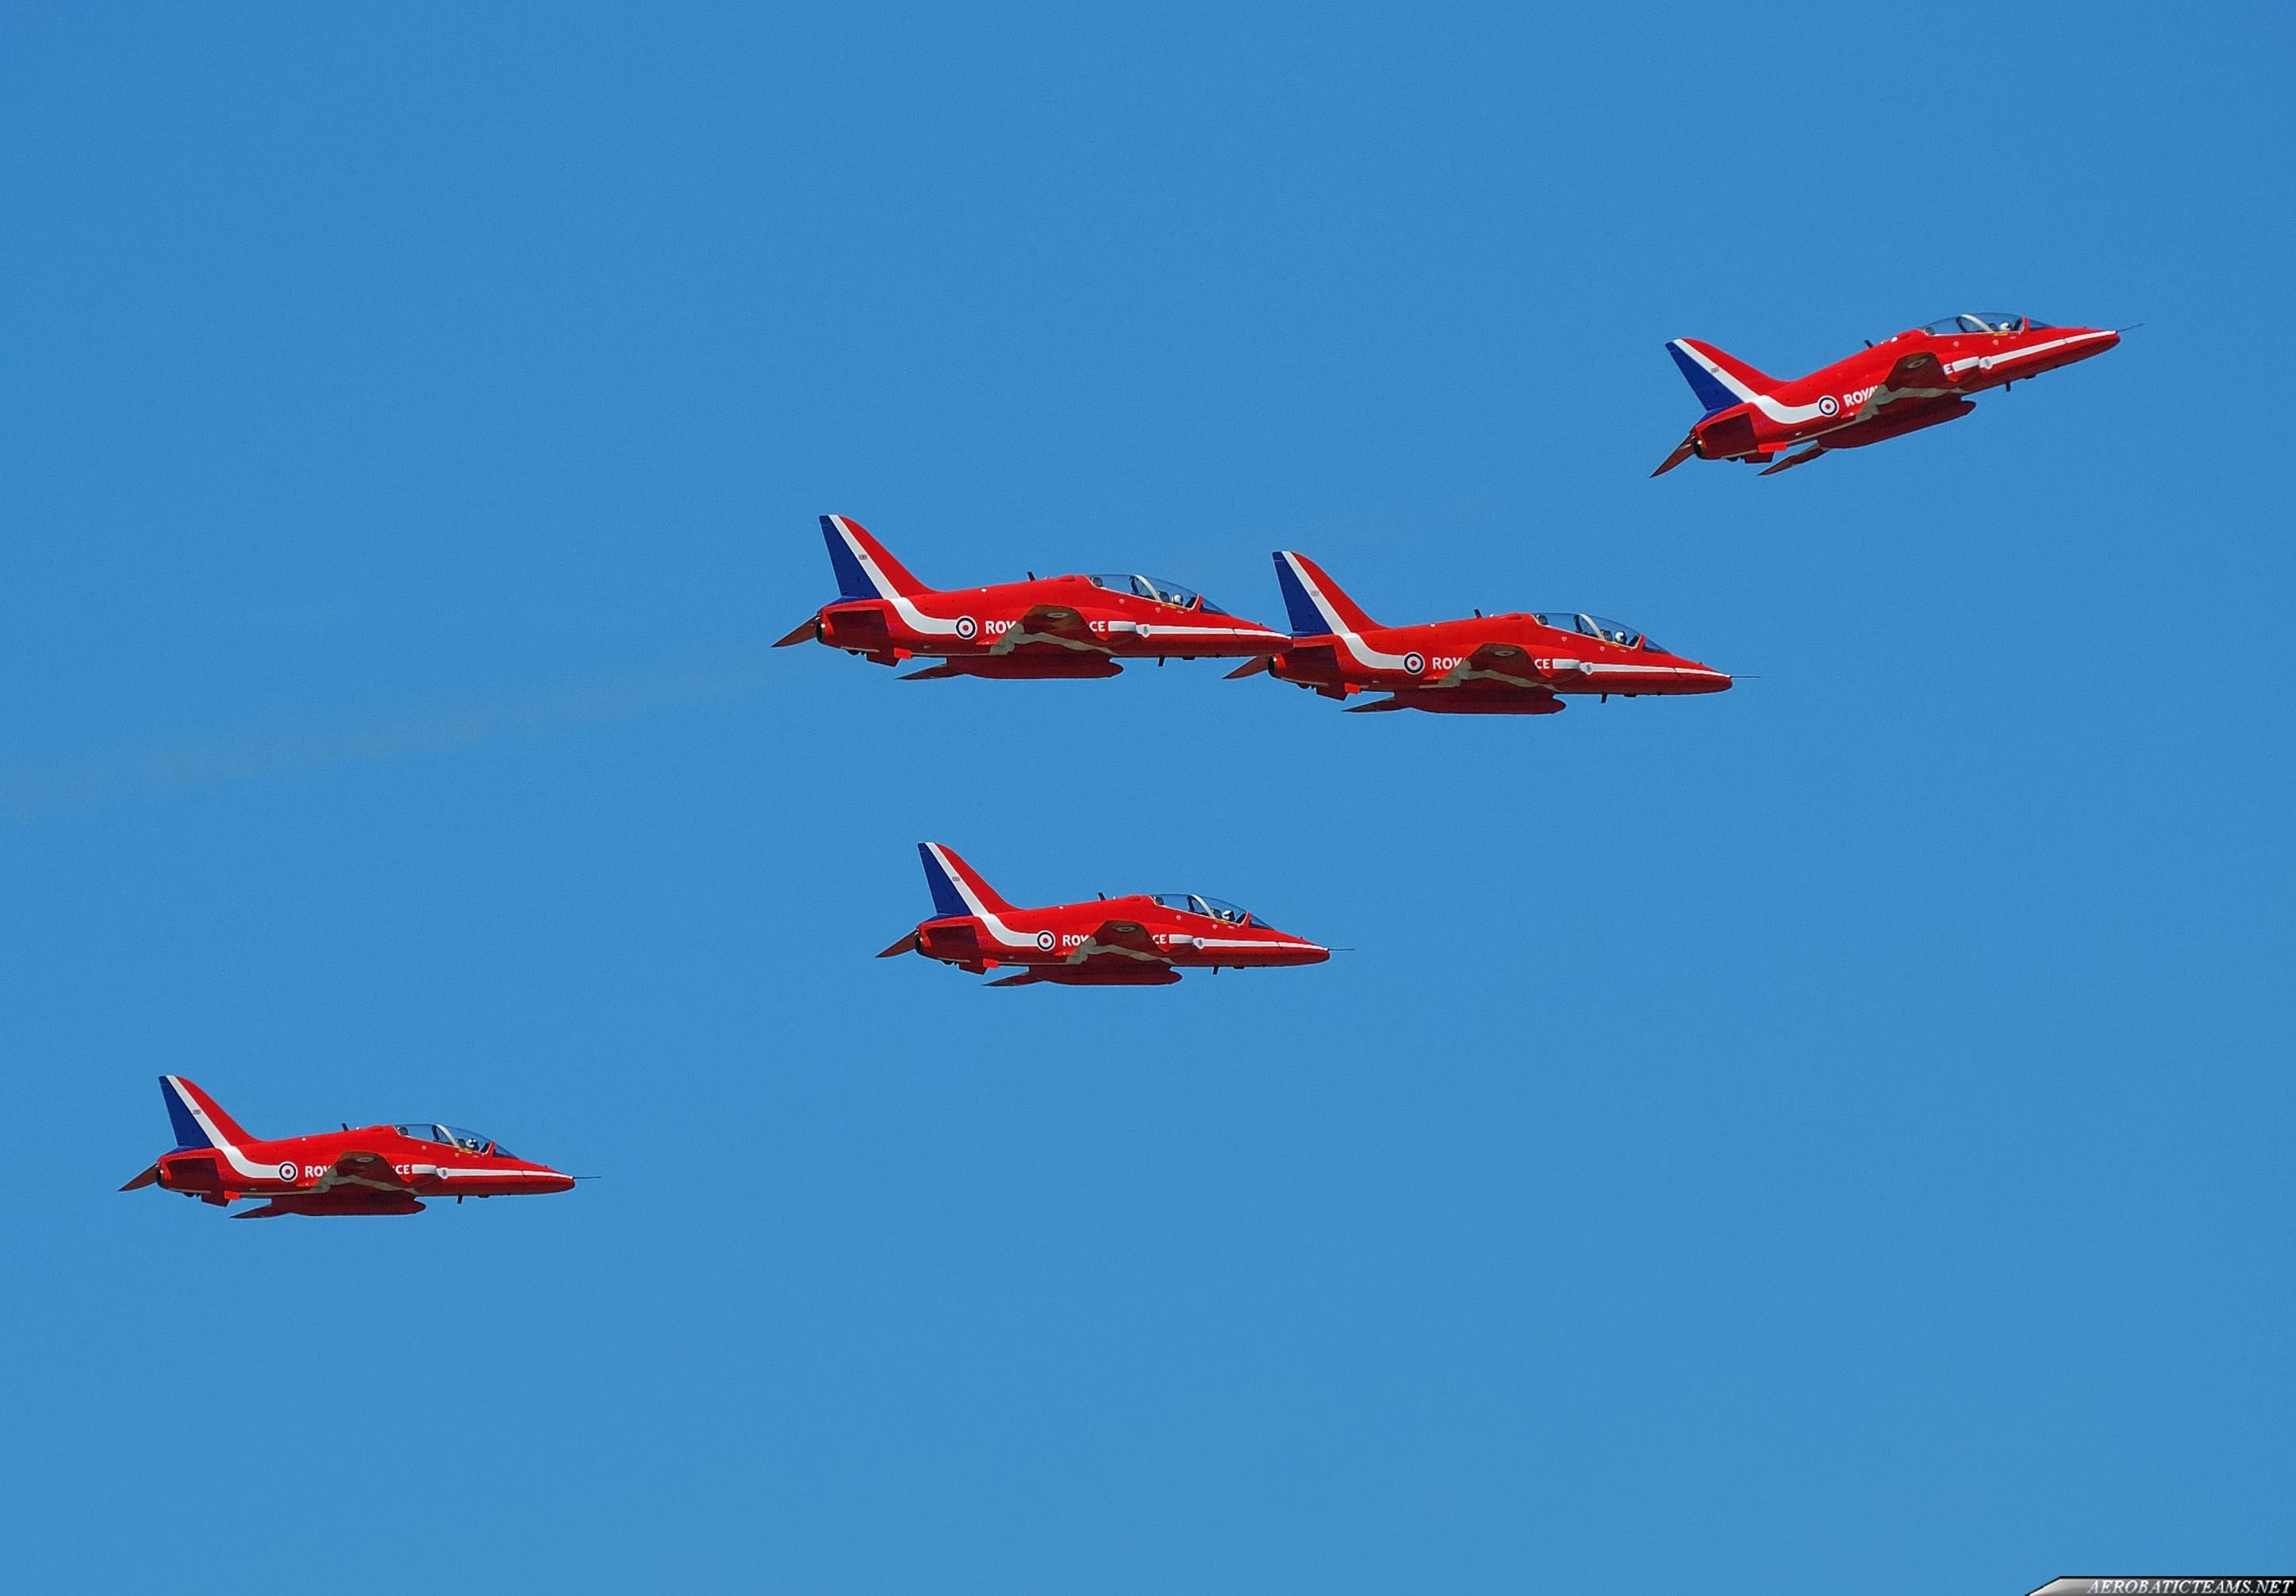 Red Arrows technical malfunction on the way to Malta